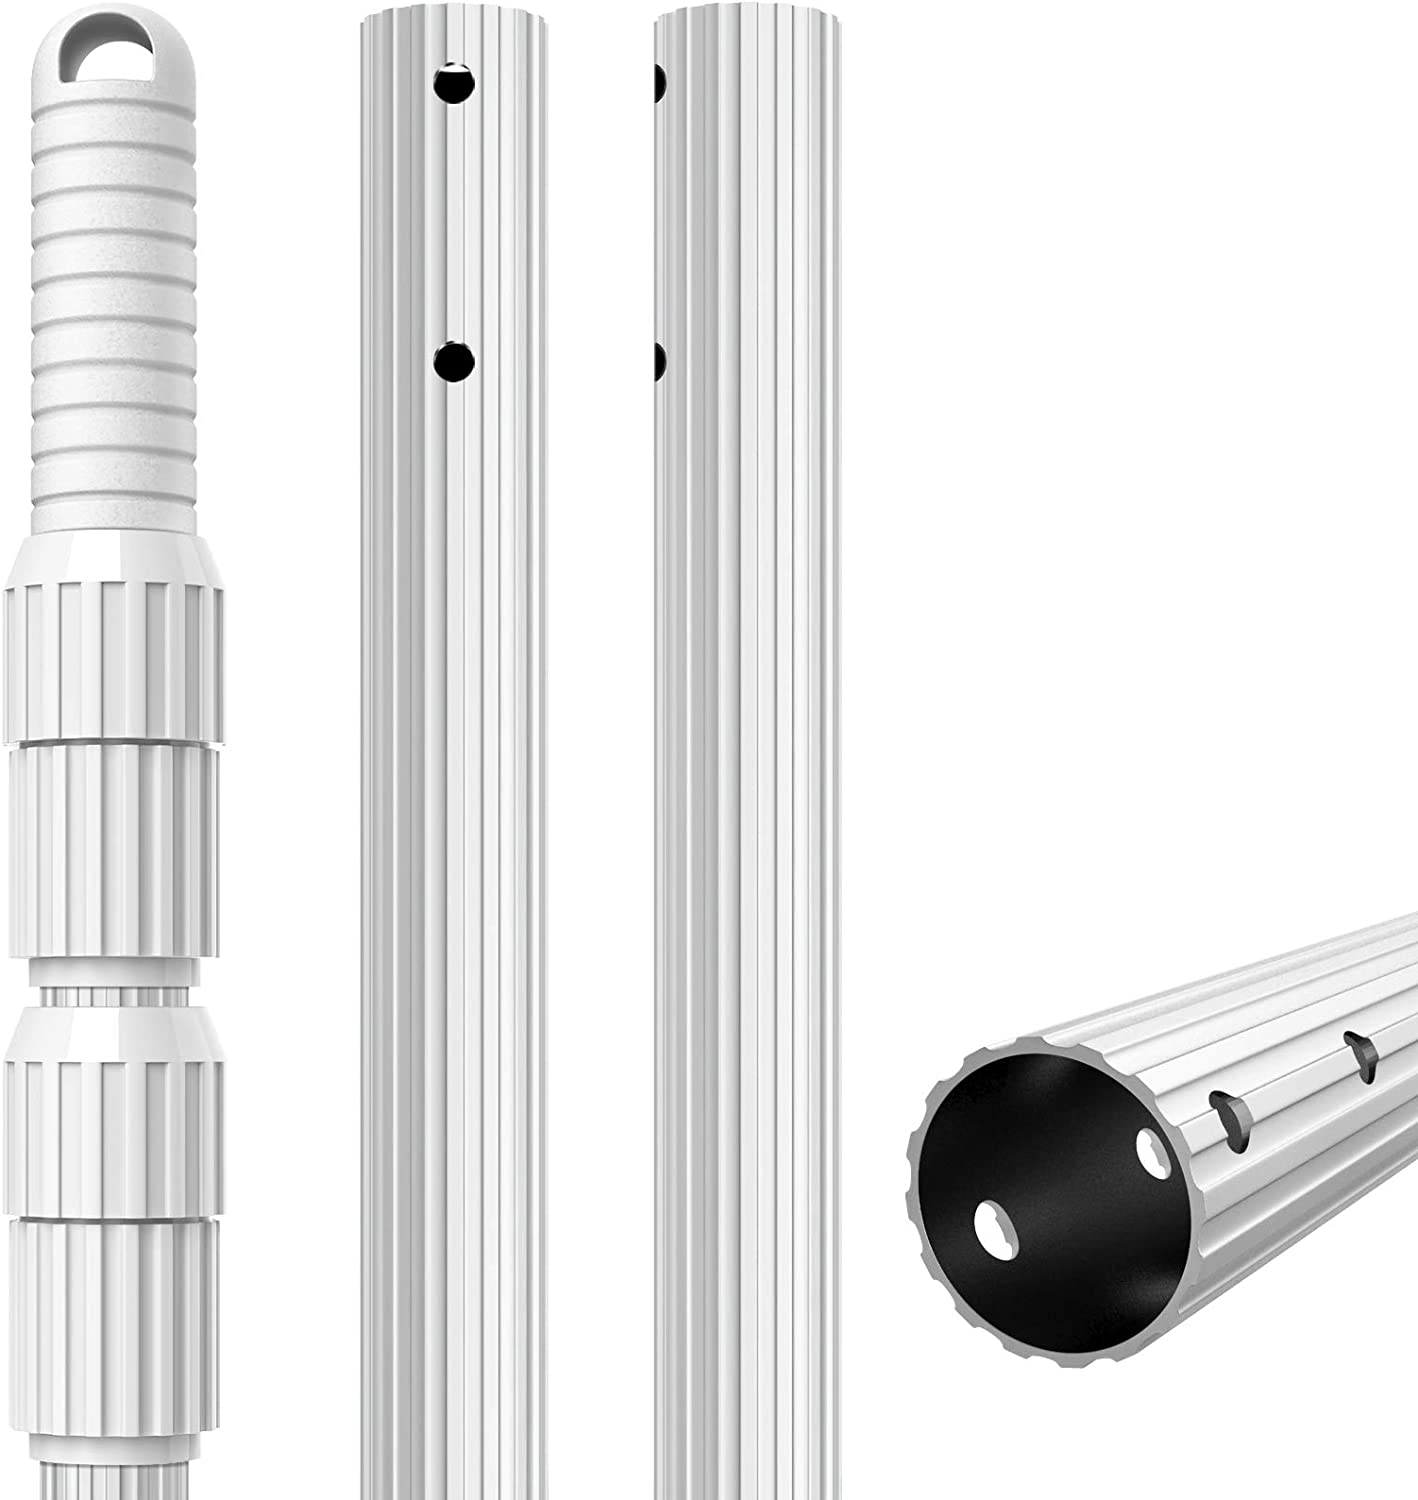 Rakes UGarden 12 Foot Aluminum Telescopic Swimming Pool Pole Vacuum Heads with Hoses Brushes 1.28mm Wall-Thickness Attach Connect Skimmer Nets Adjustable 3 Piece Expandable Step-Up